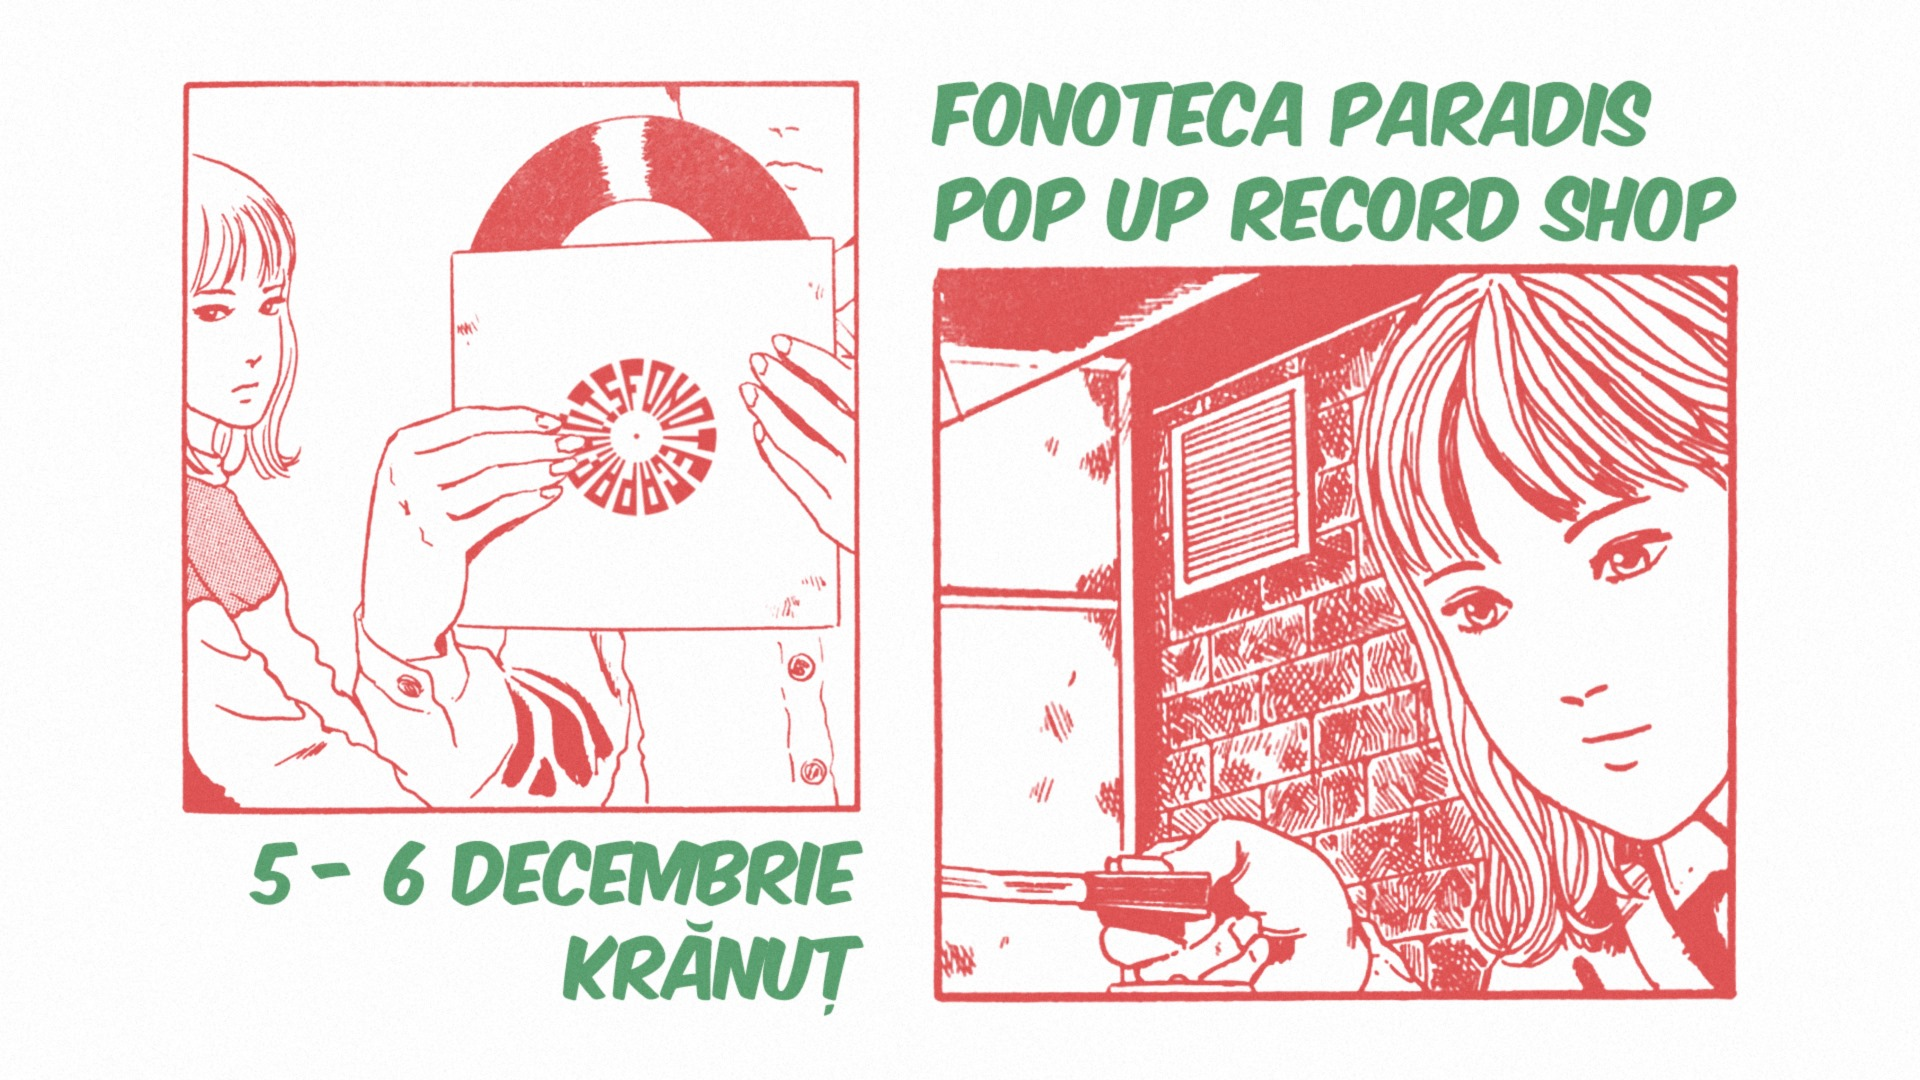 Fonoteca Paradis Pop-Up Record Shop